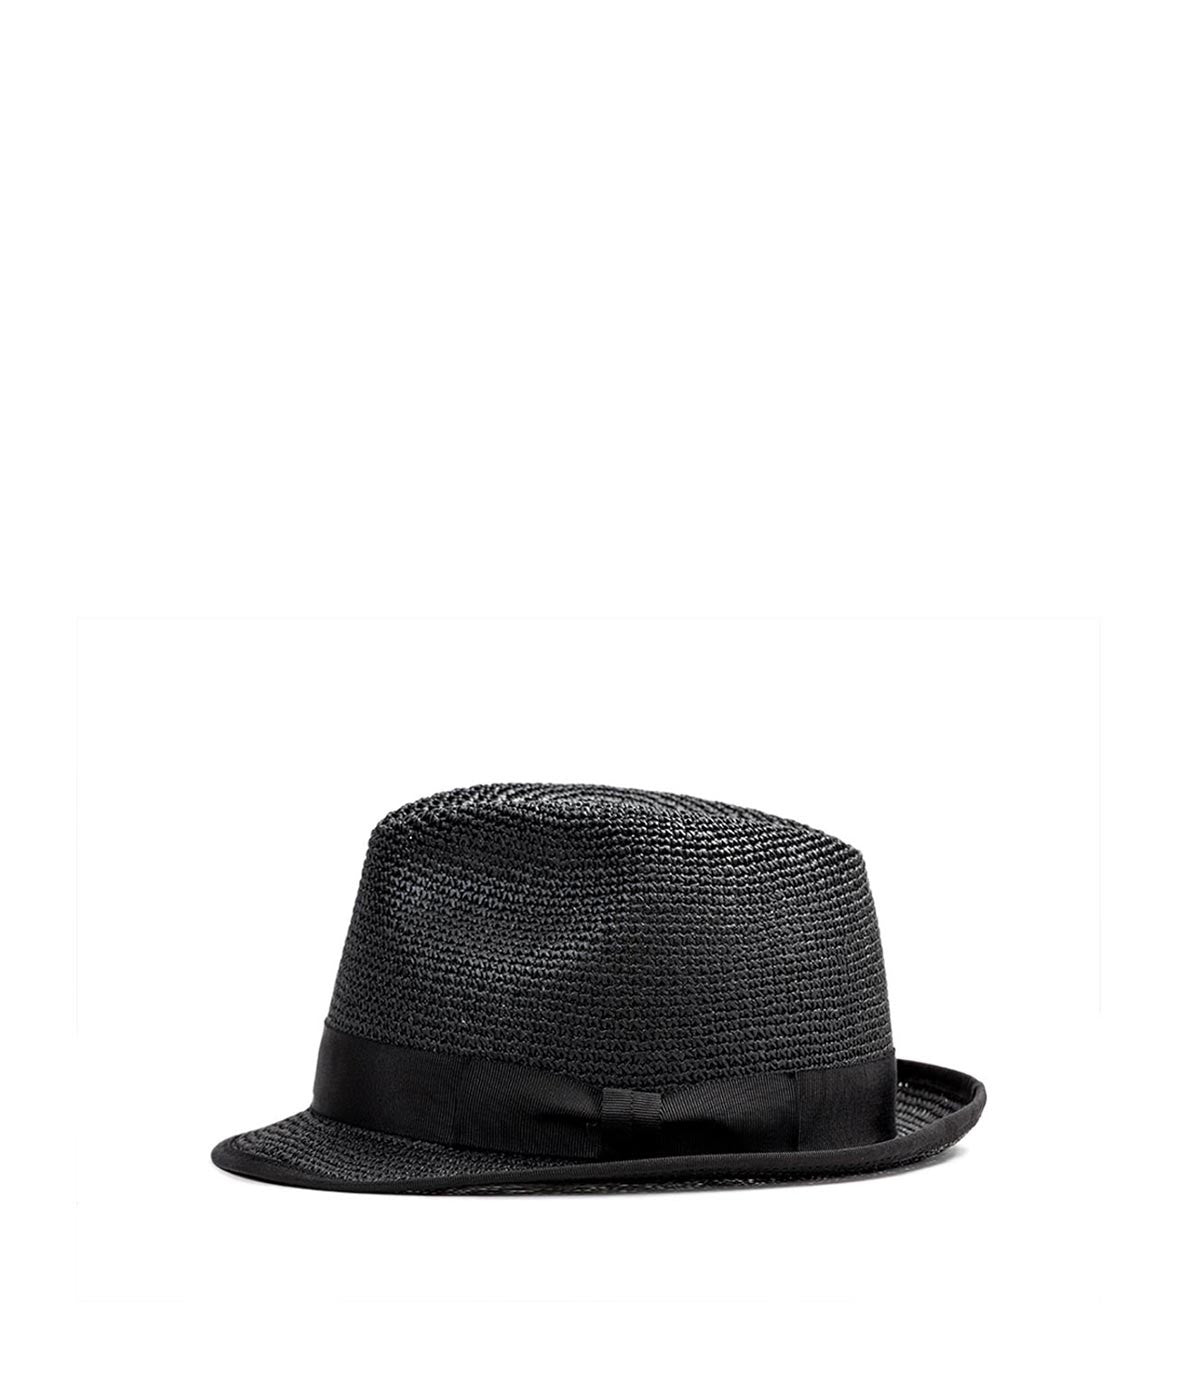 Straw Fedora with Grosgrain Trim